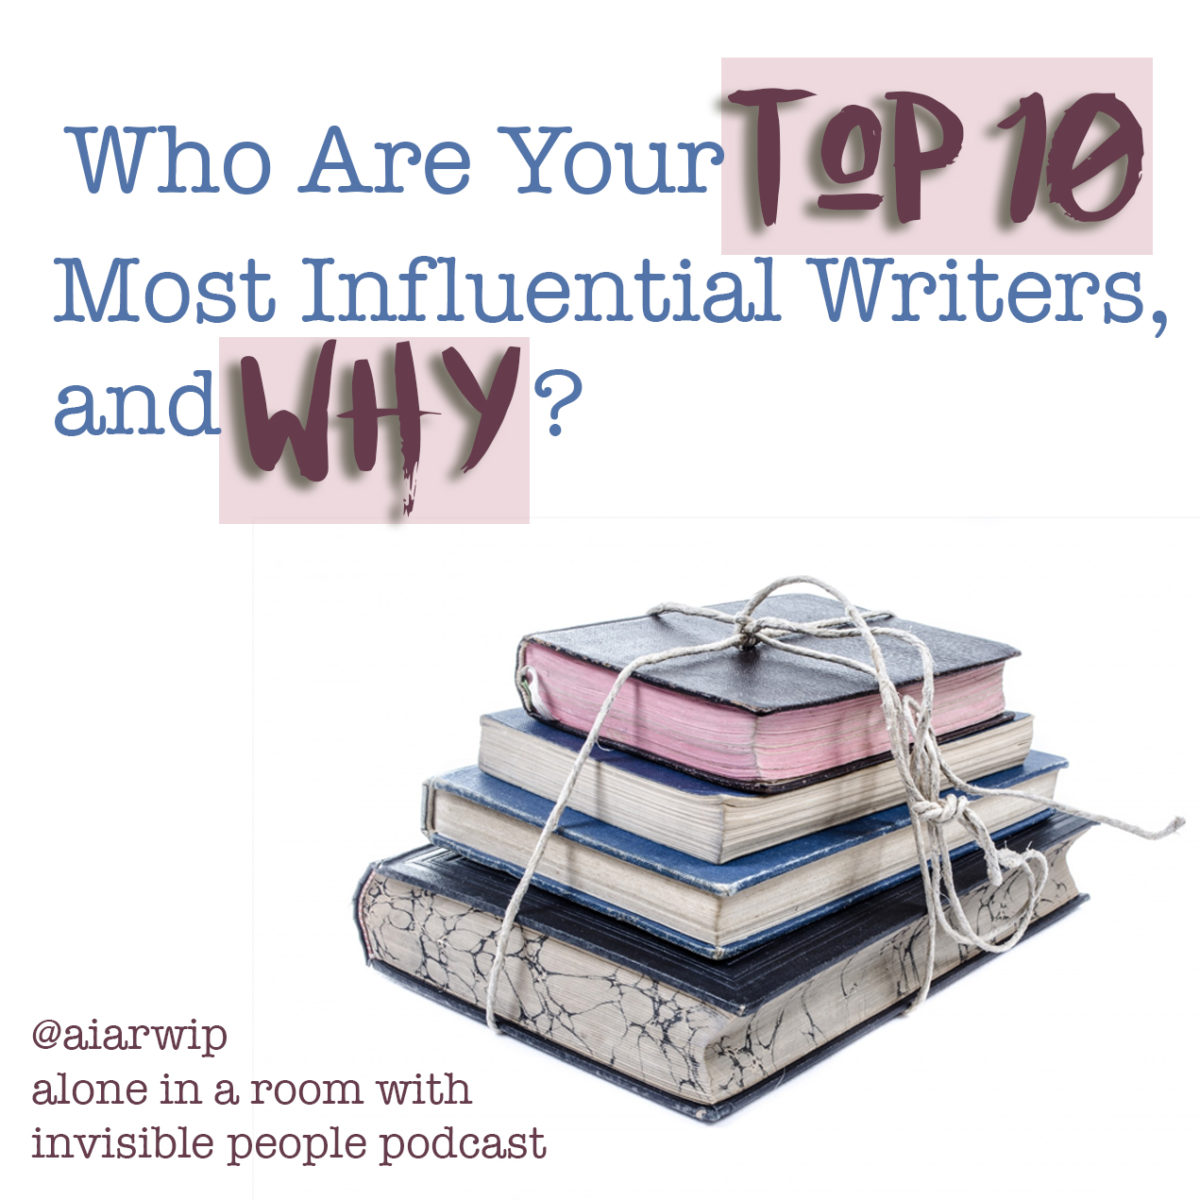 Episode 72: Who Are Your 10 Most Influential Writers and Why?